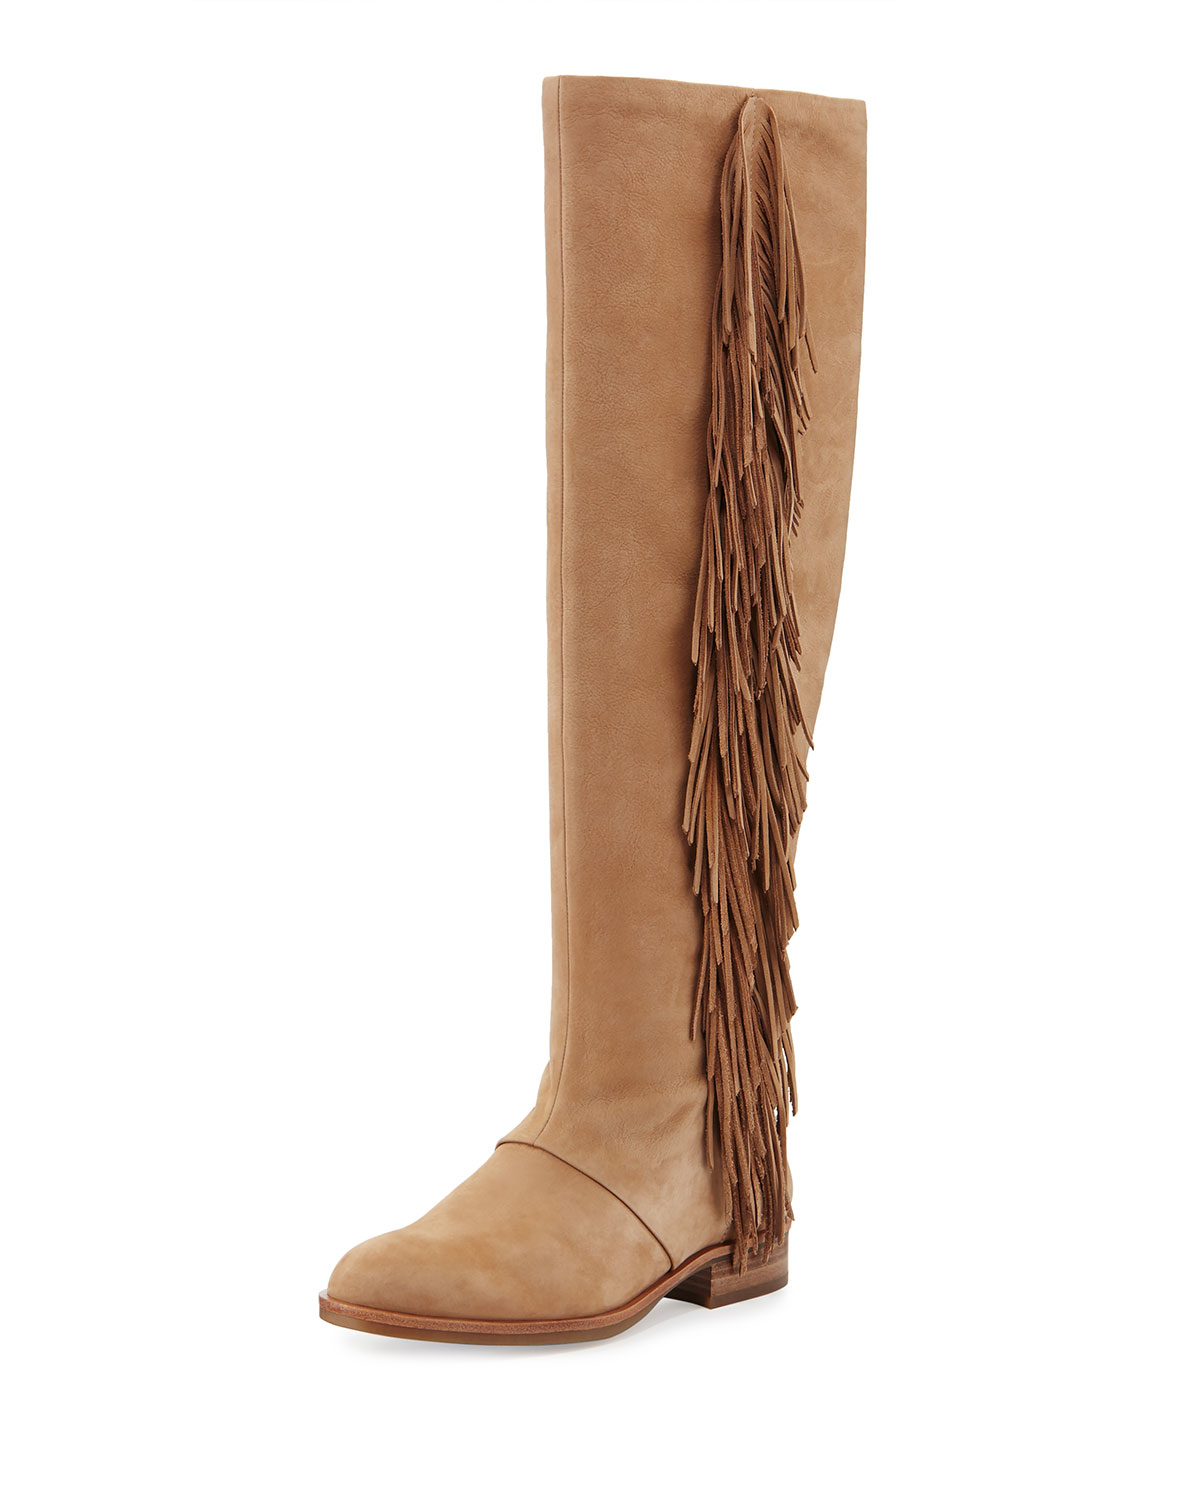 23cc6e3439c81 Lyst - Sam Edelman Josephine Fringed Knee-High Boots in Natural